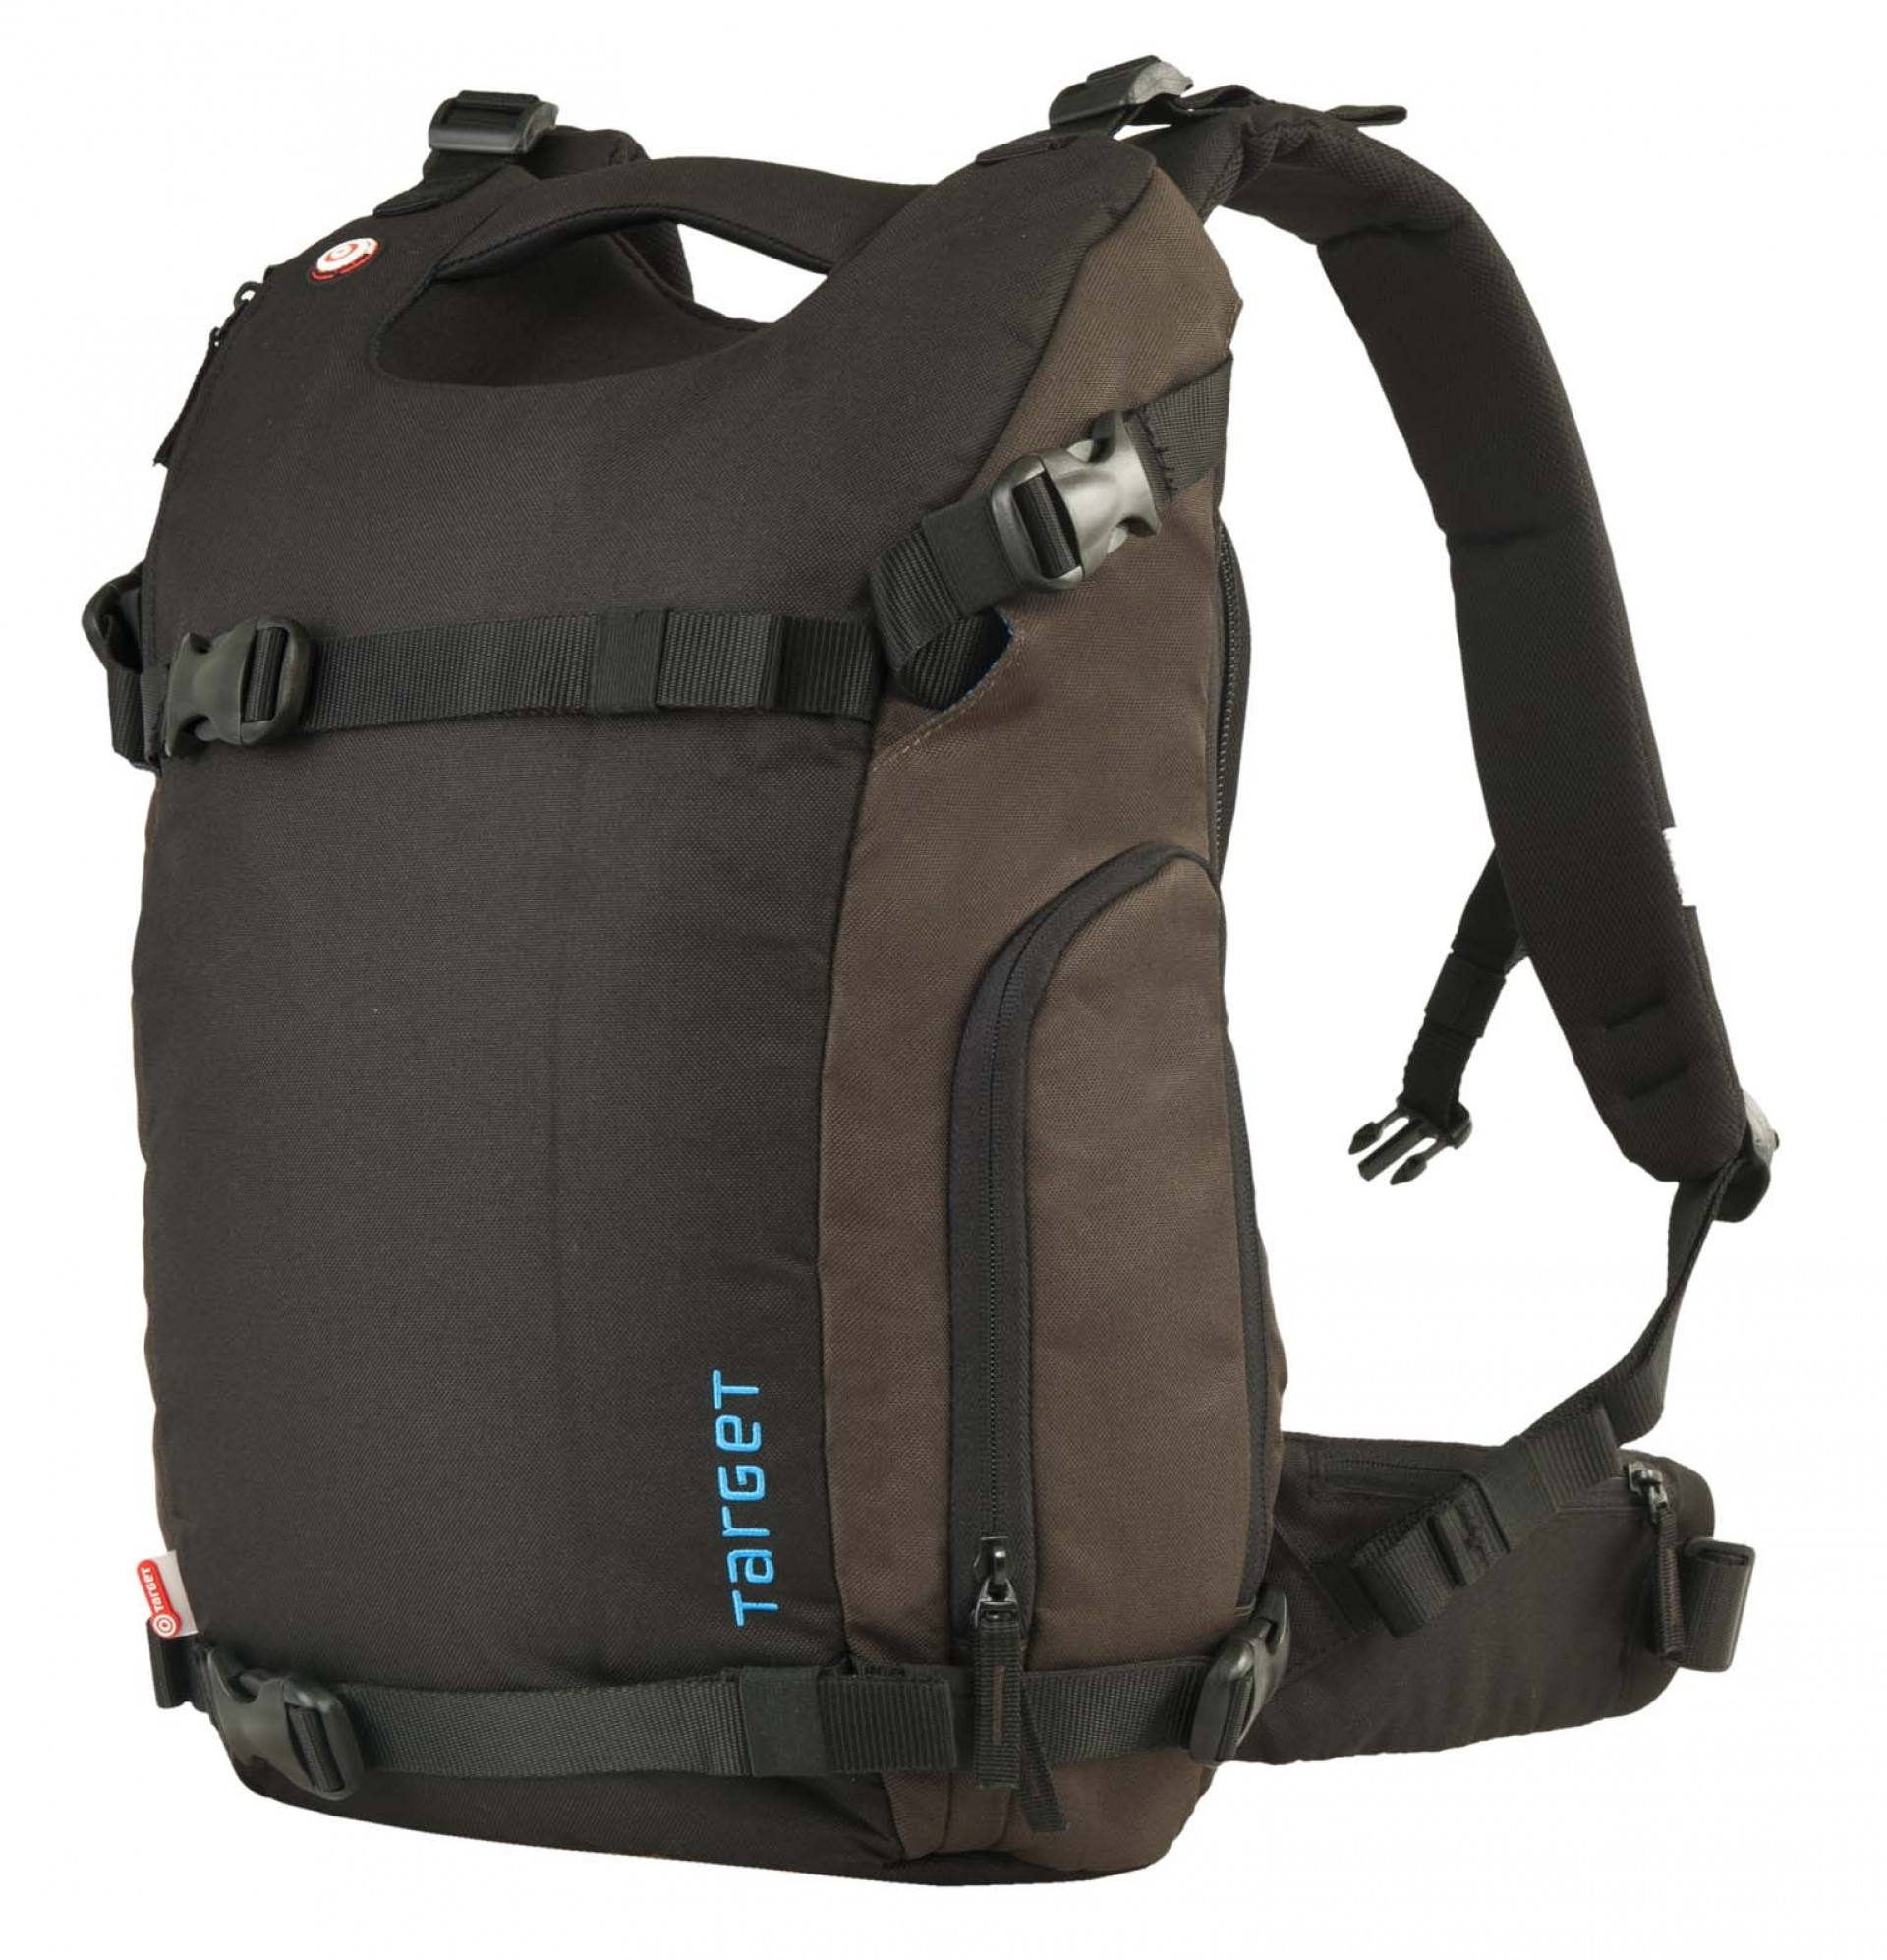 Cabela's Hiking Backpack